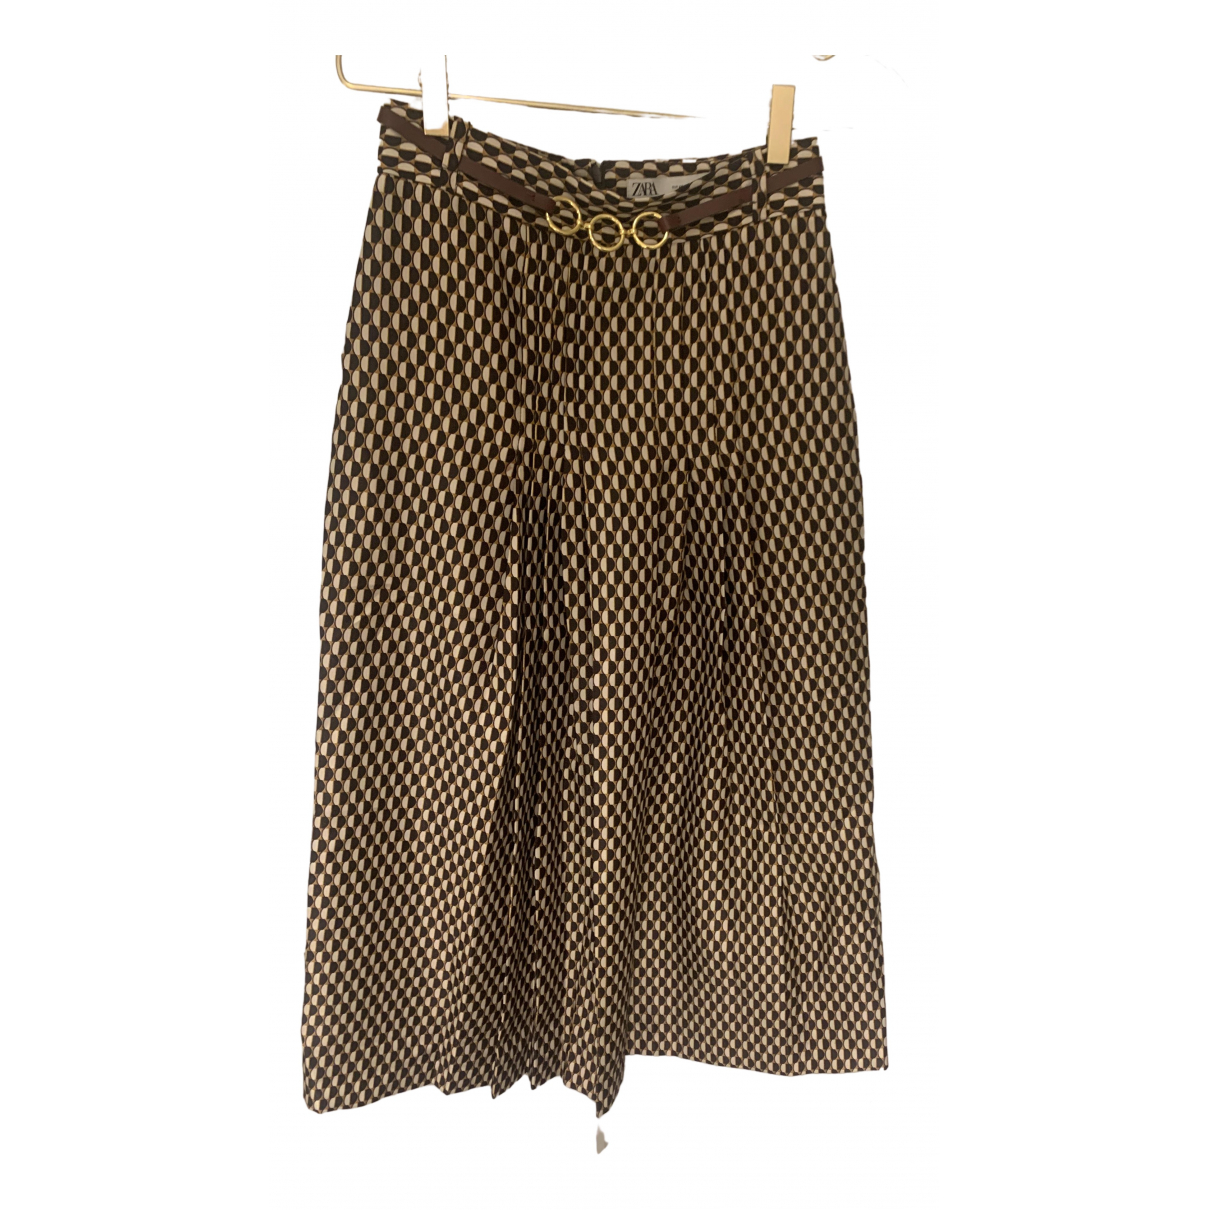 Zara \N Brown skirt for Women XS International